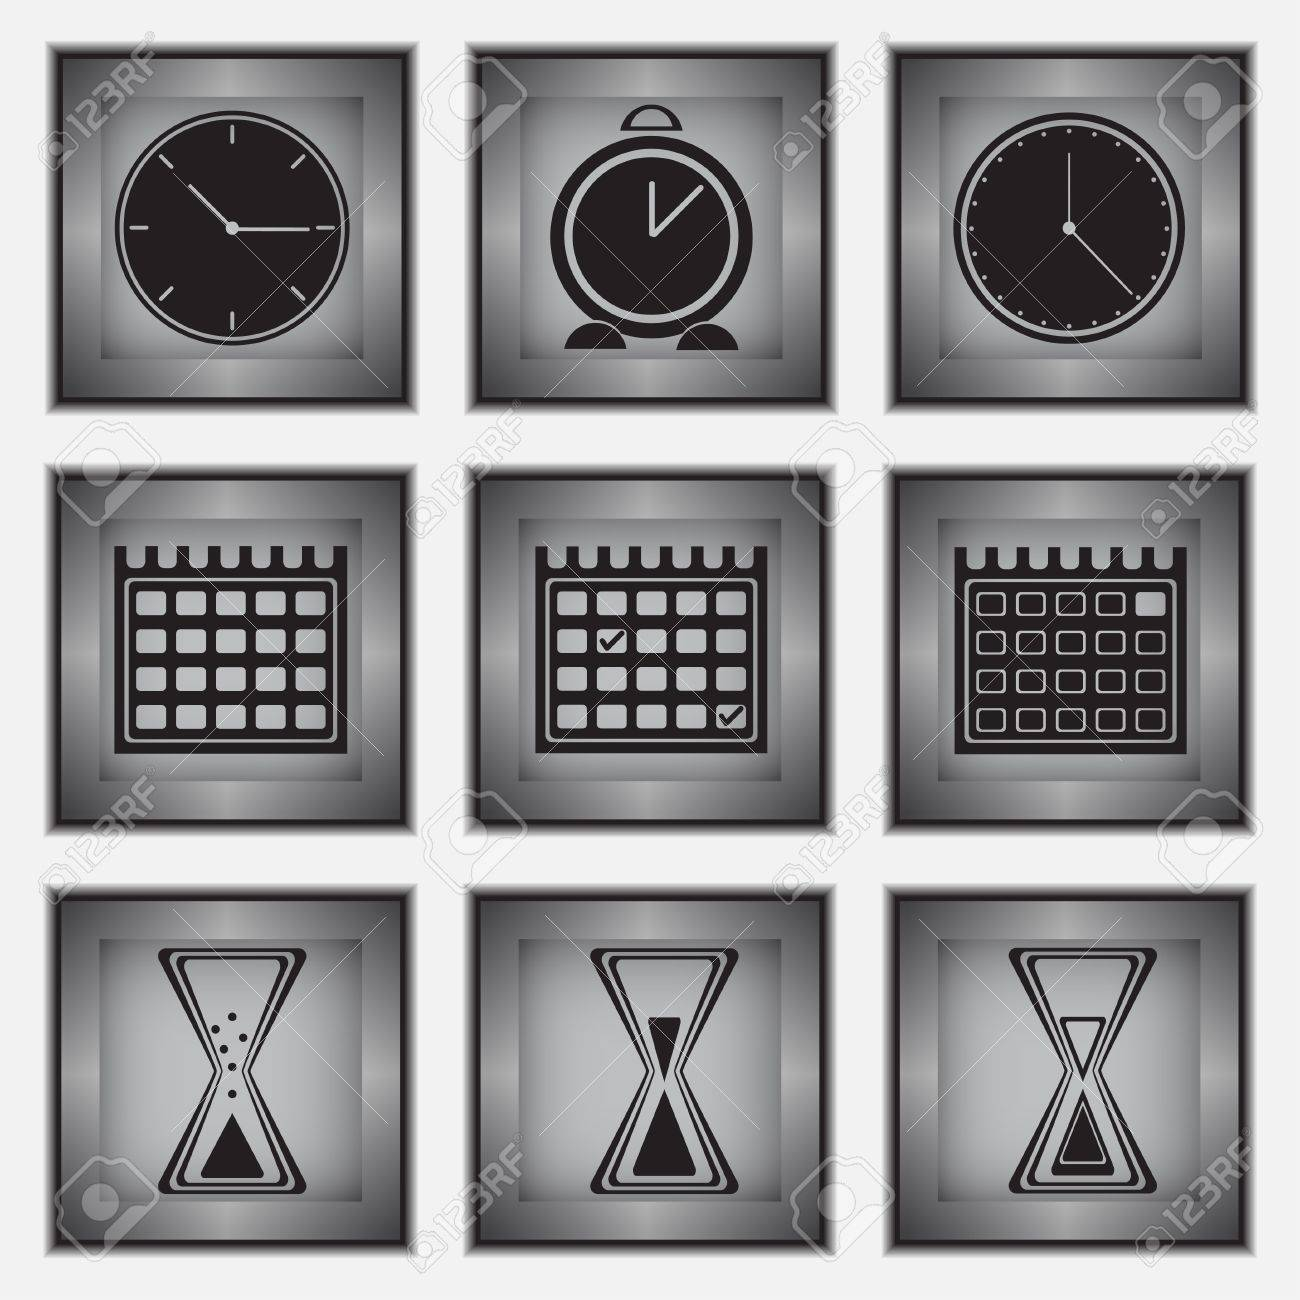 Vector  illustration of various time icons Stock Vector - 19716025